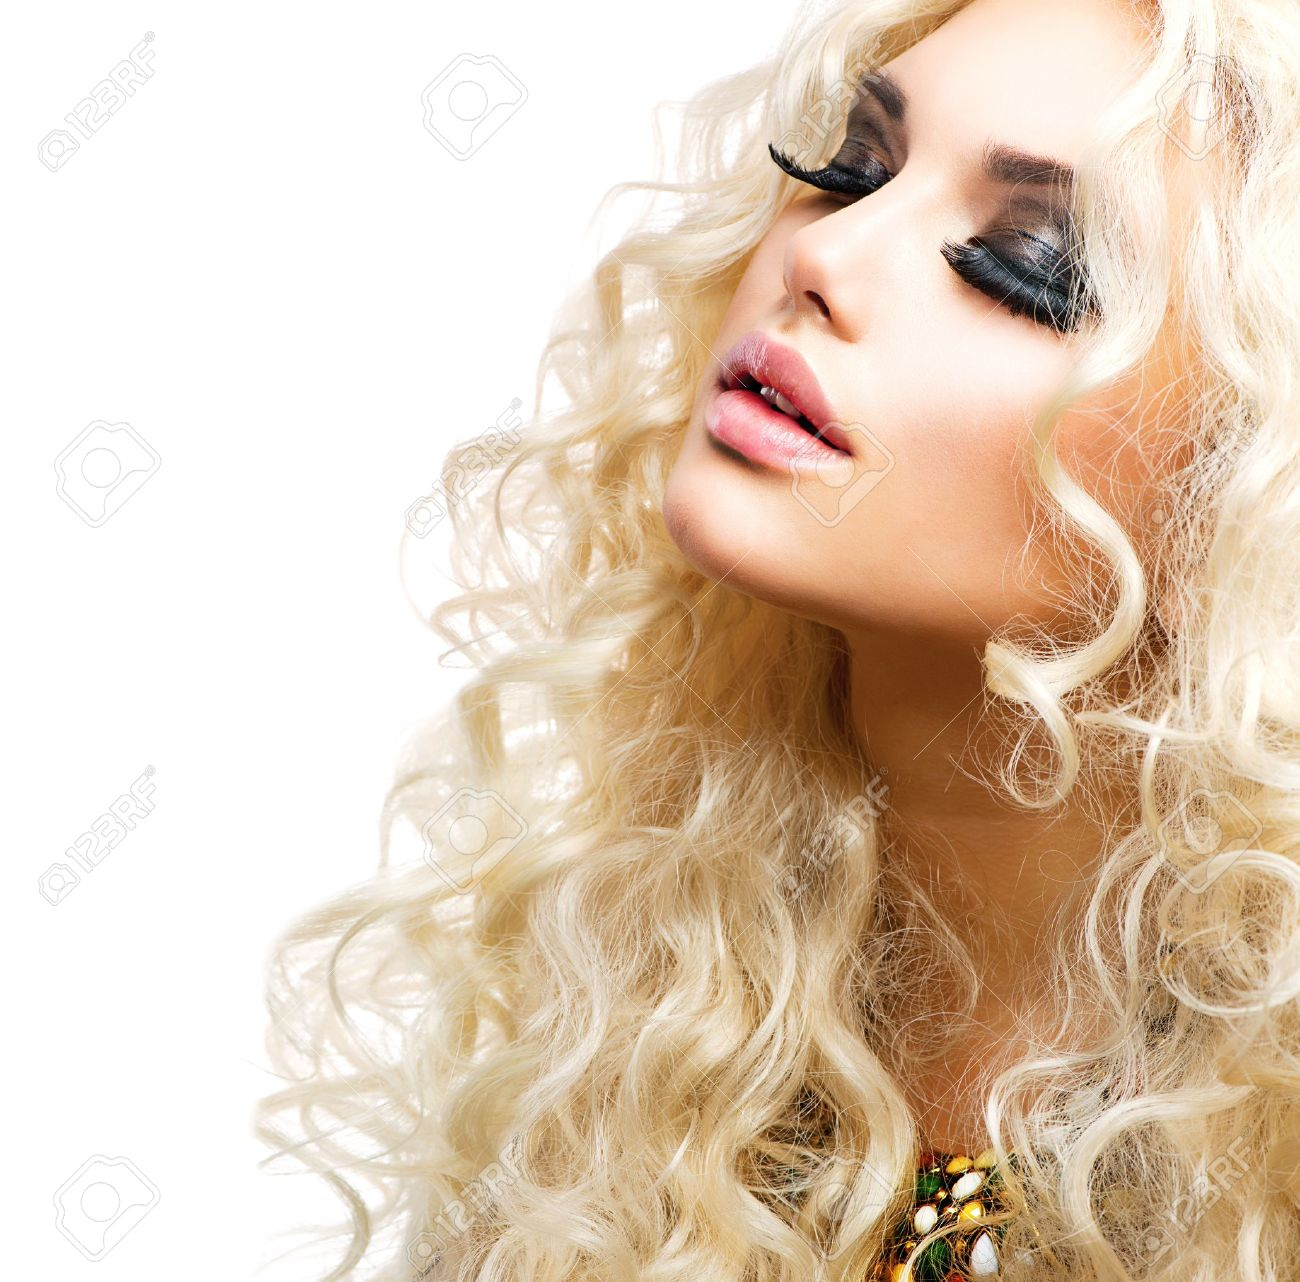 Beautiful Girl with Curly Blond Hair isolated on White Stock Photo - 17384052